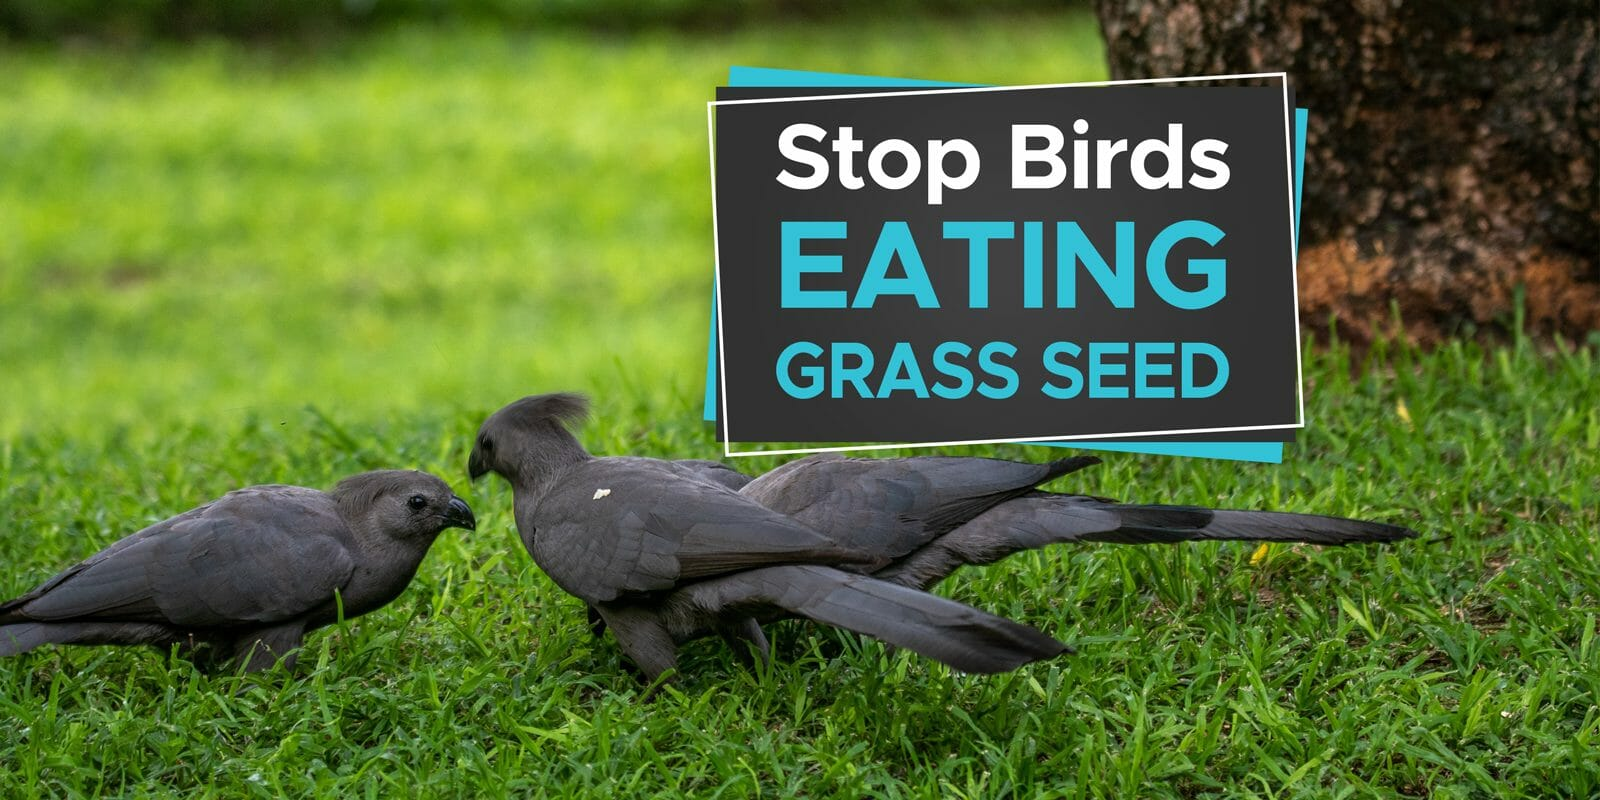 how to stop birds eating grass seed